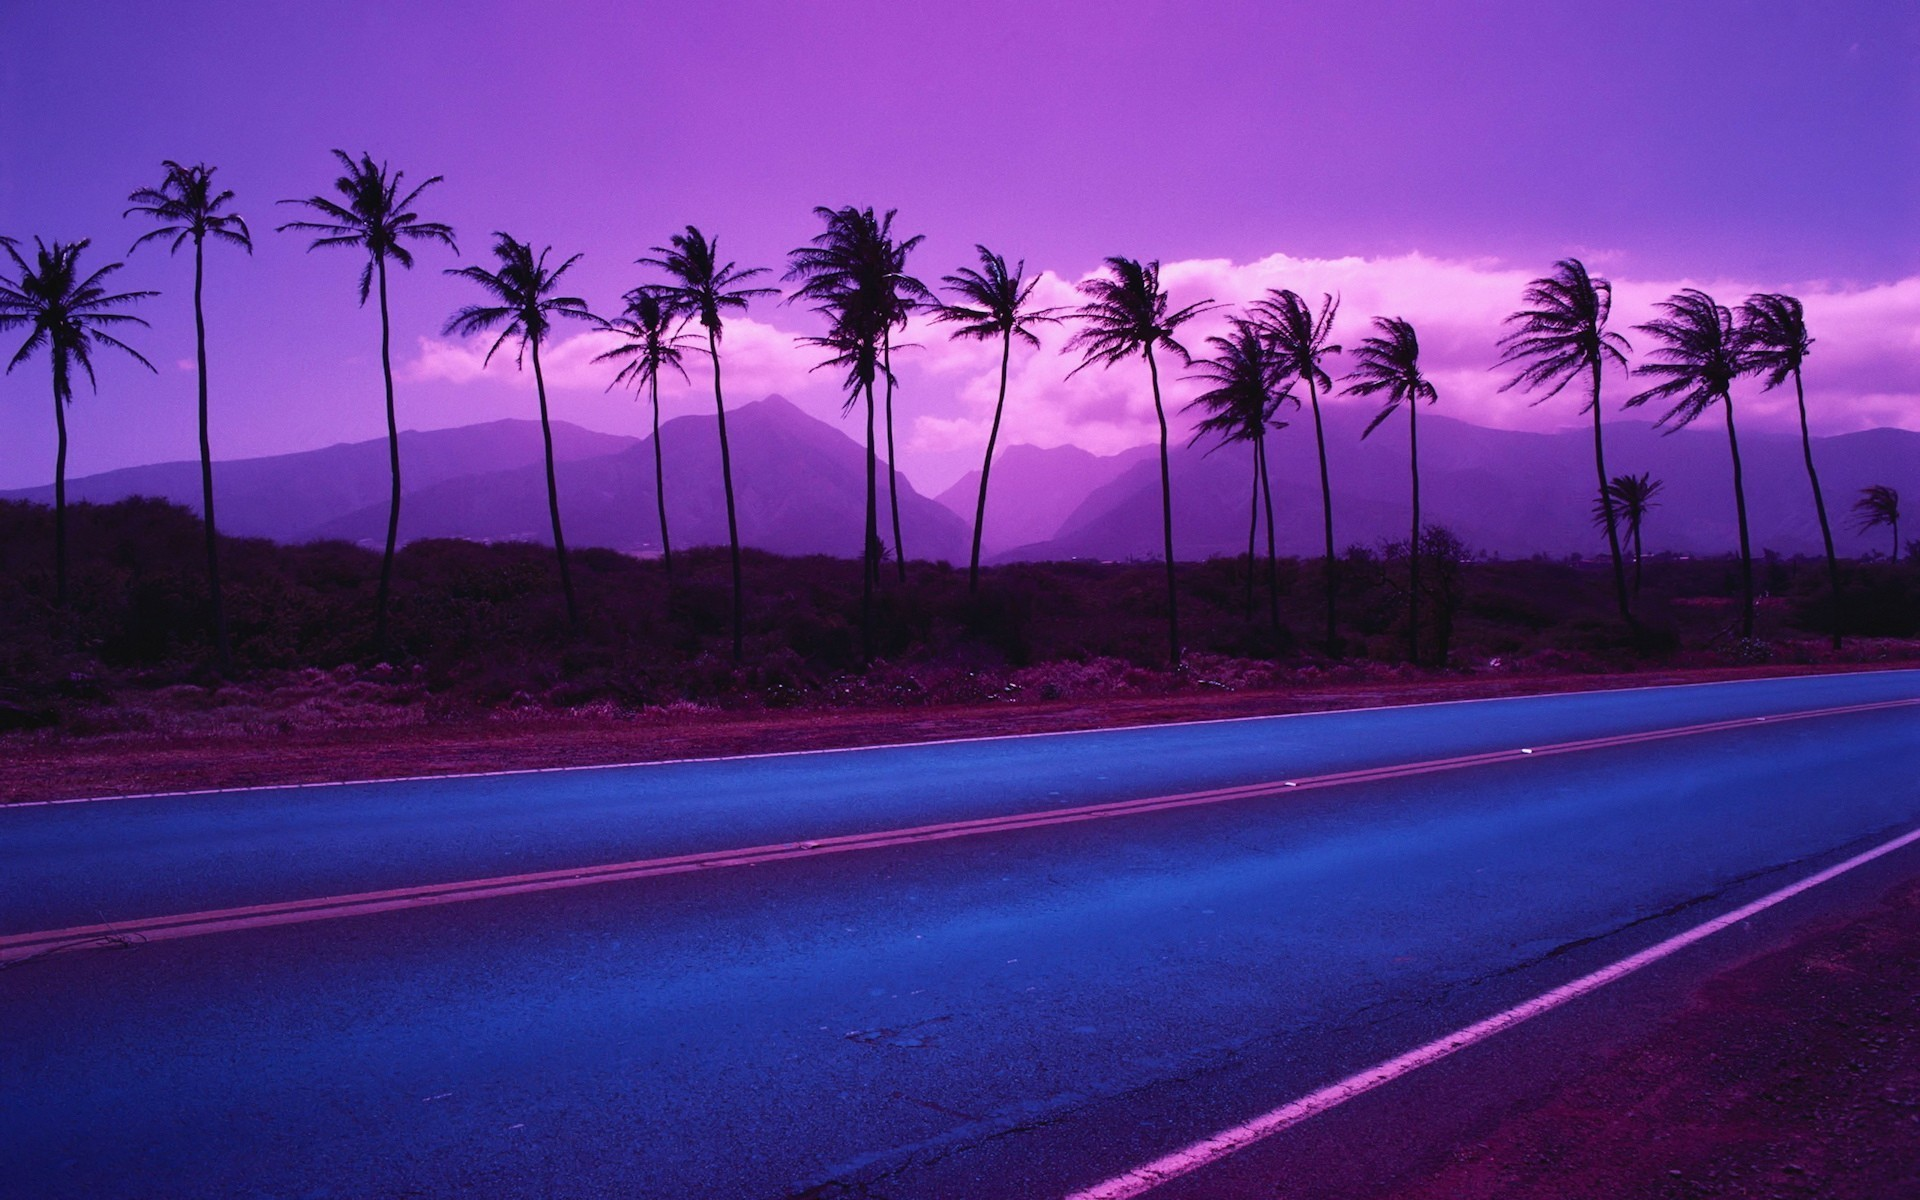 Iphone 6 wallpaper tumblr palm trees - Purple Palm Trees Wallpapers Purple Palm Trees Myspace Backgrounds